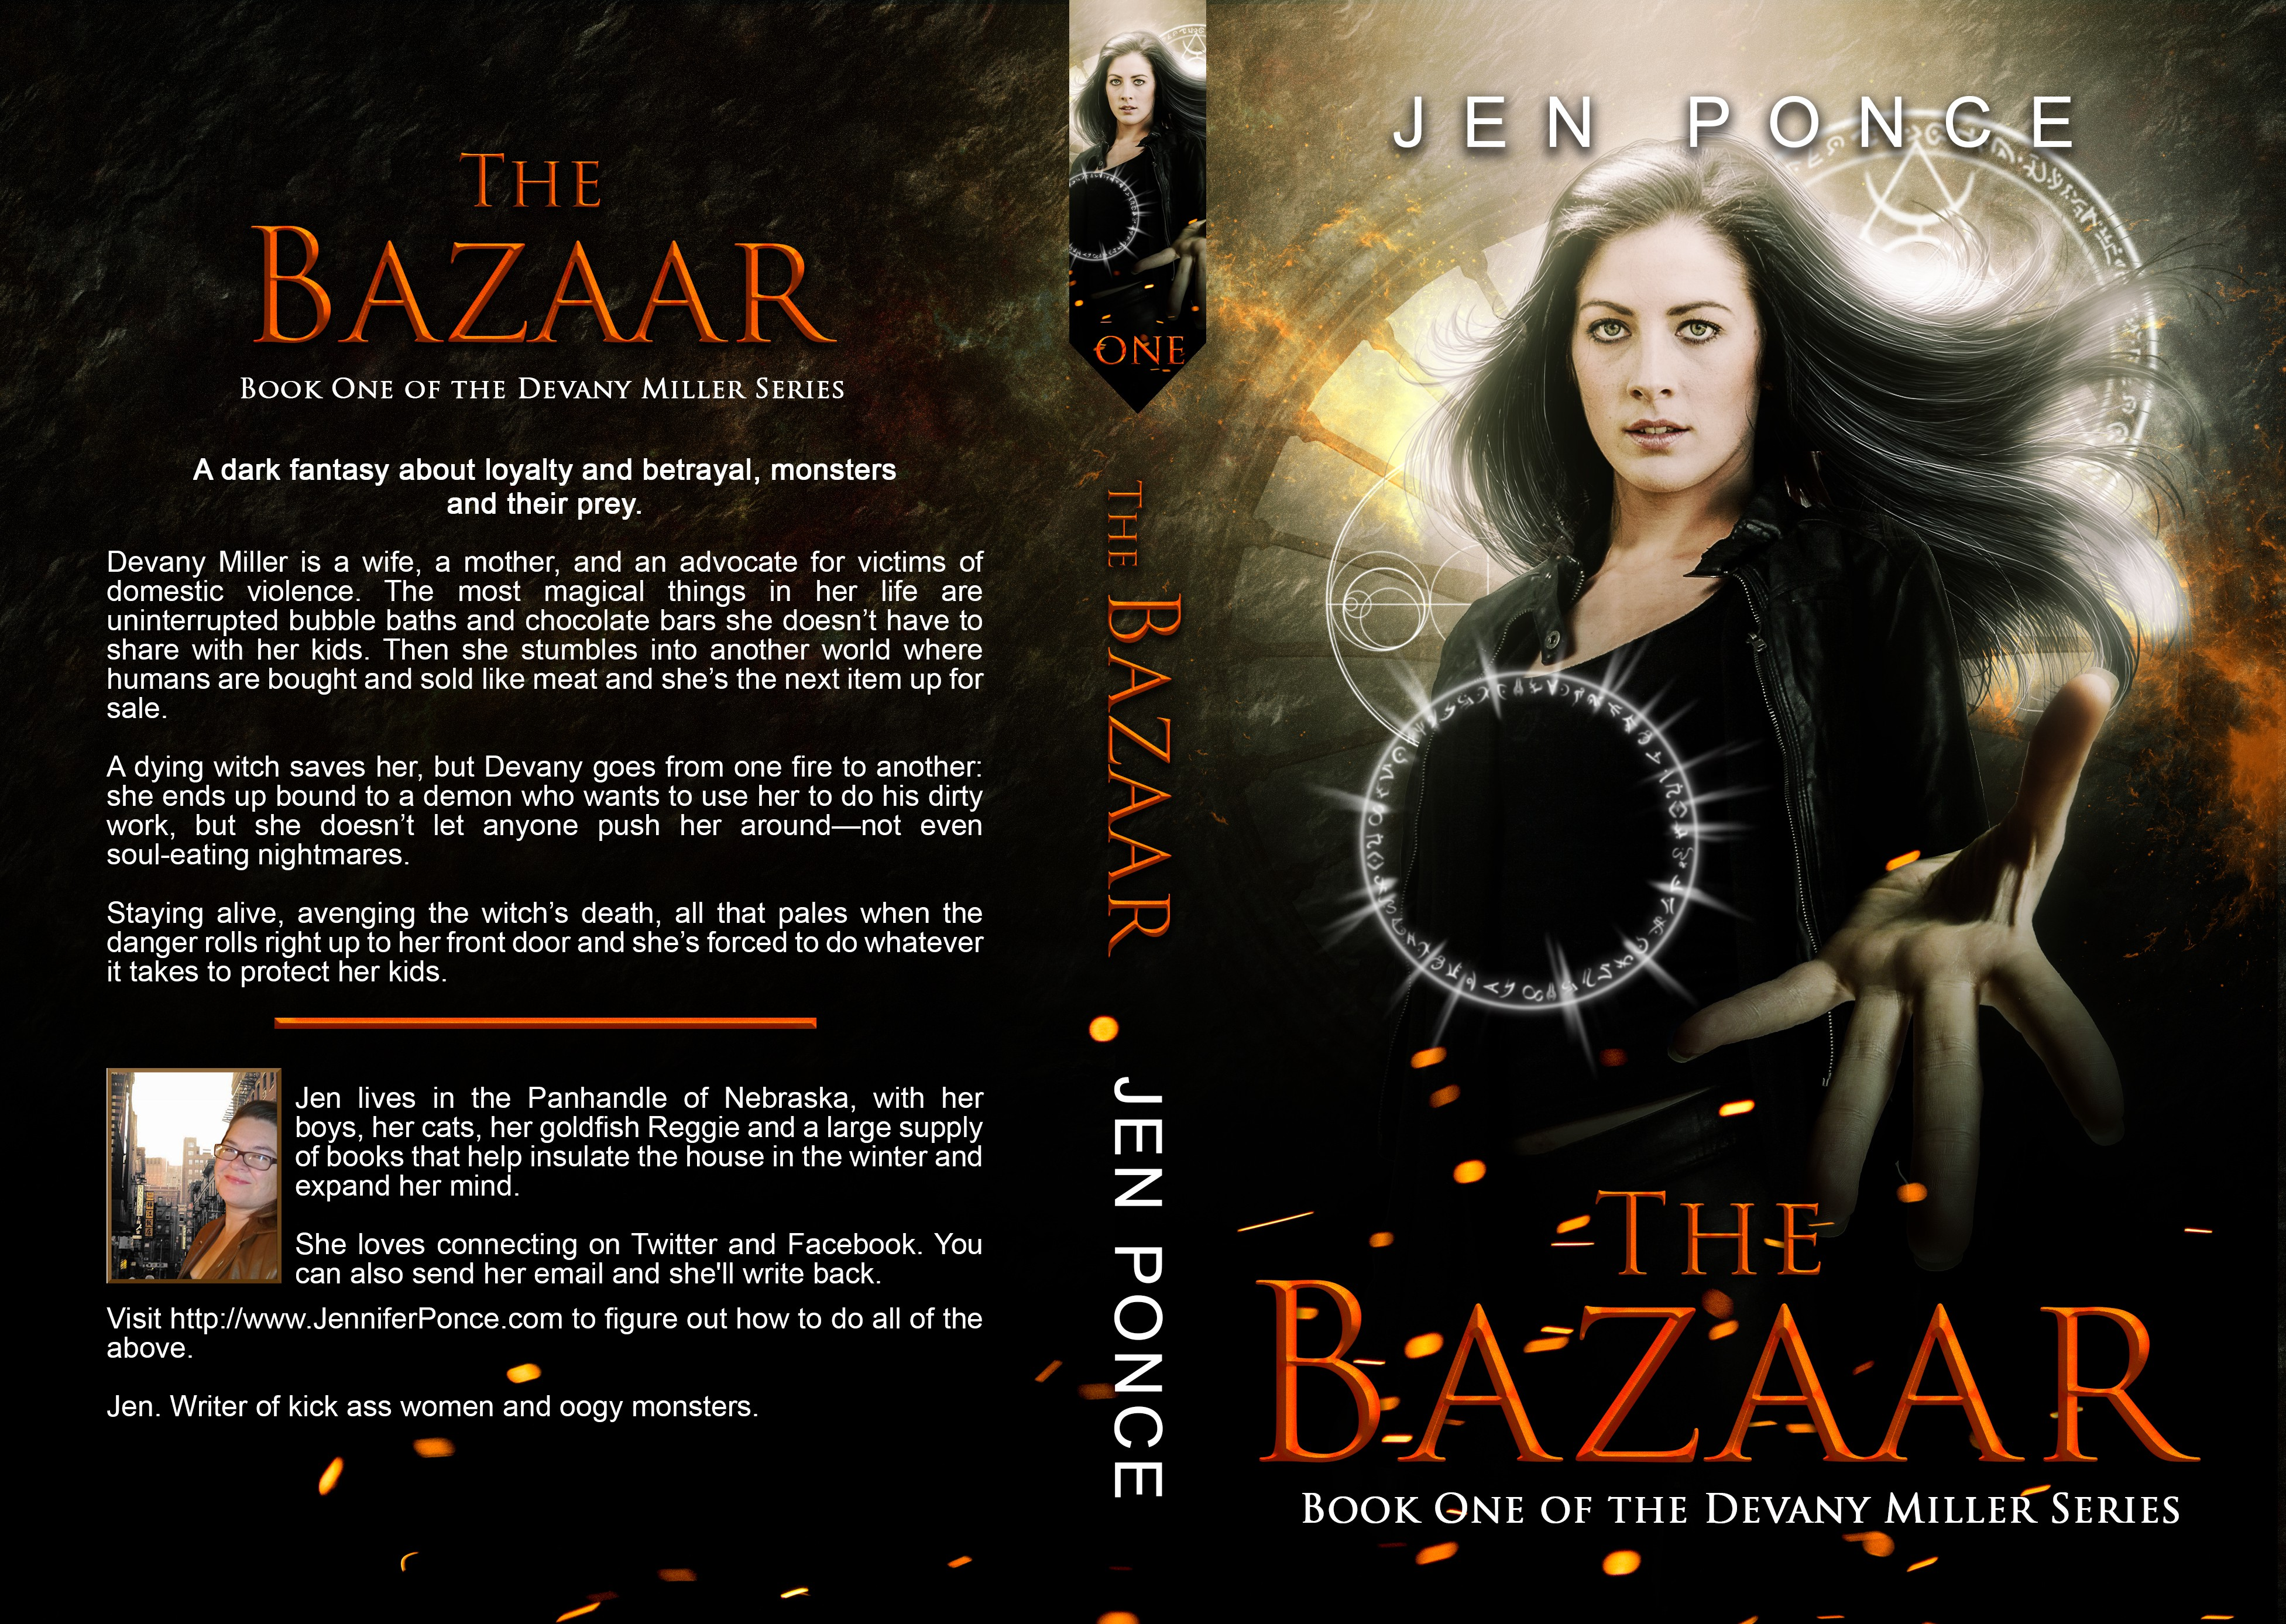 Design a creepy, kickass cover for the dark fantasy novel The Bazaar